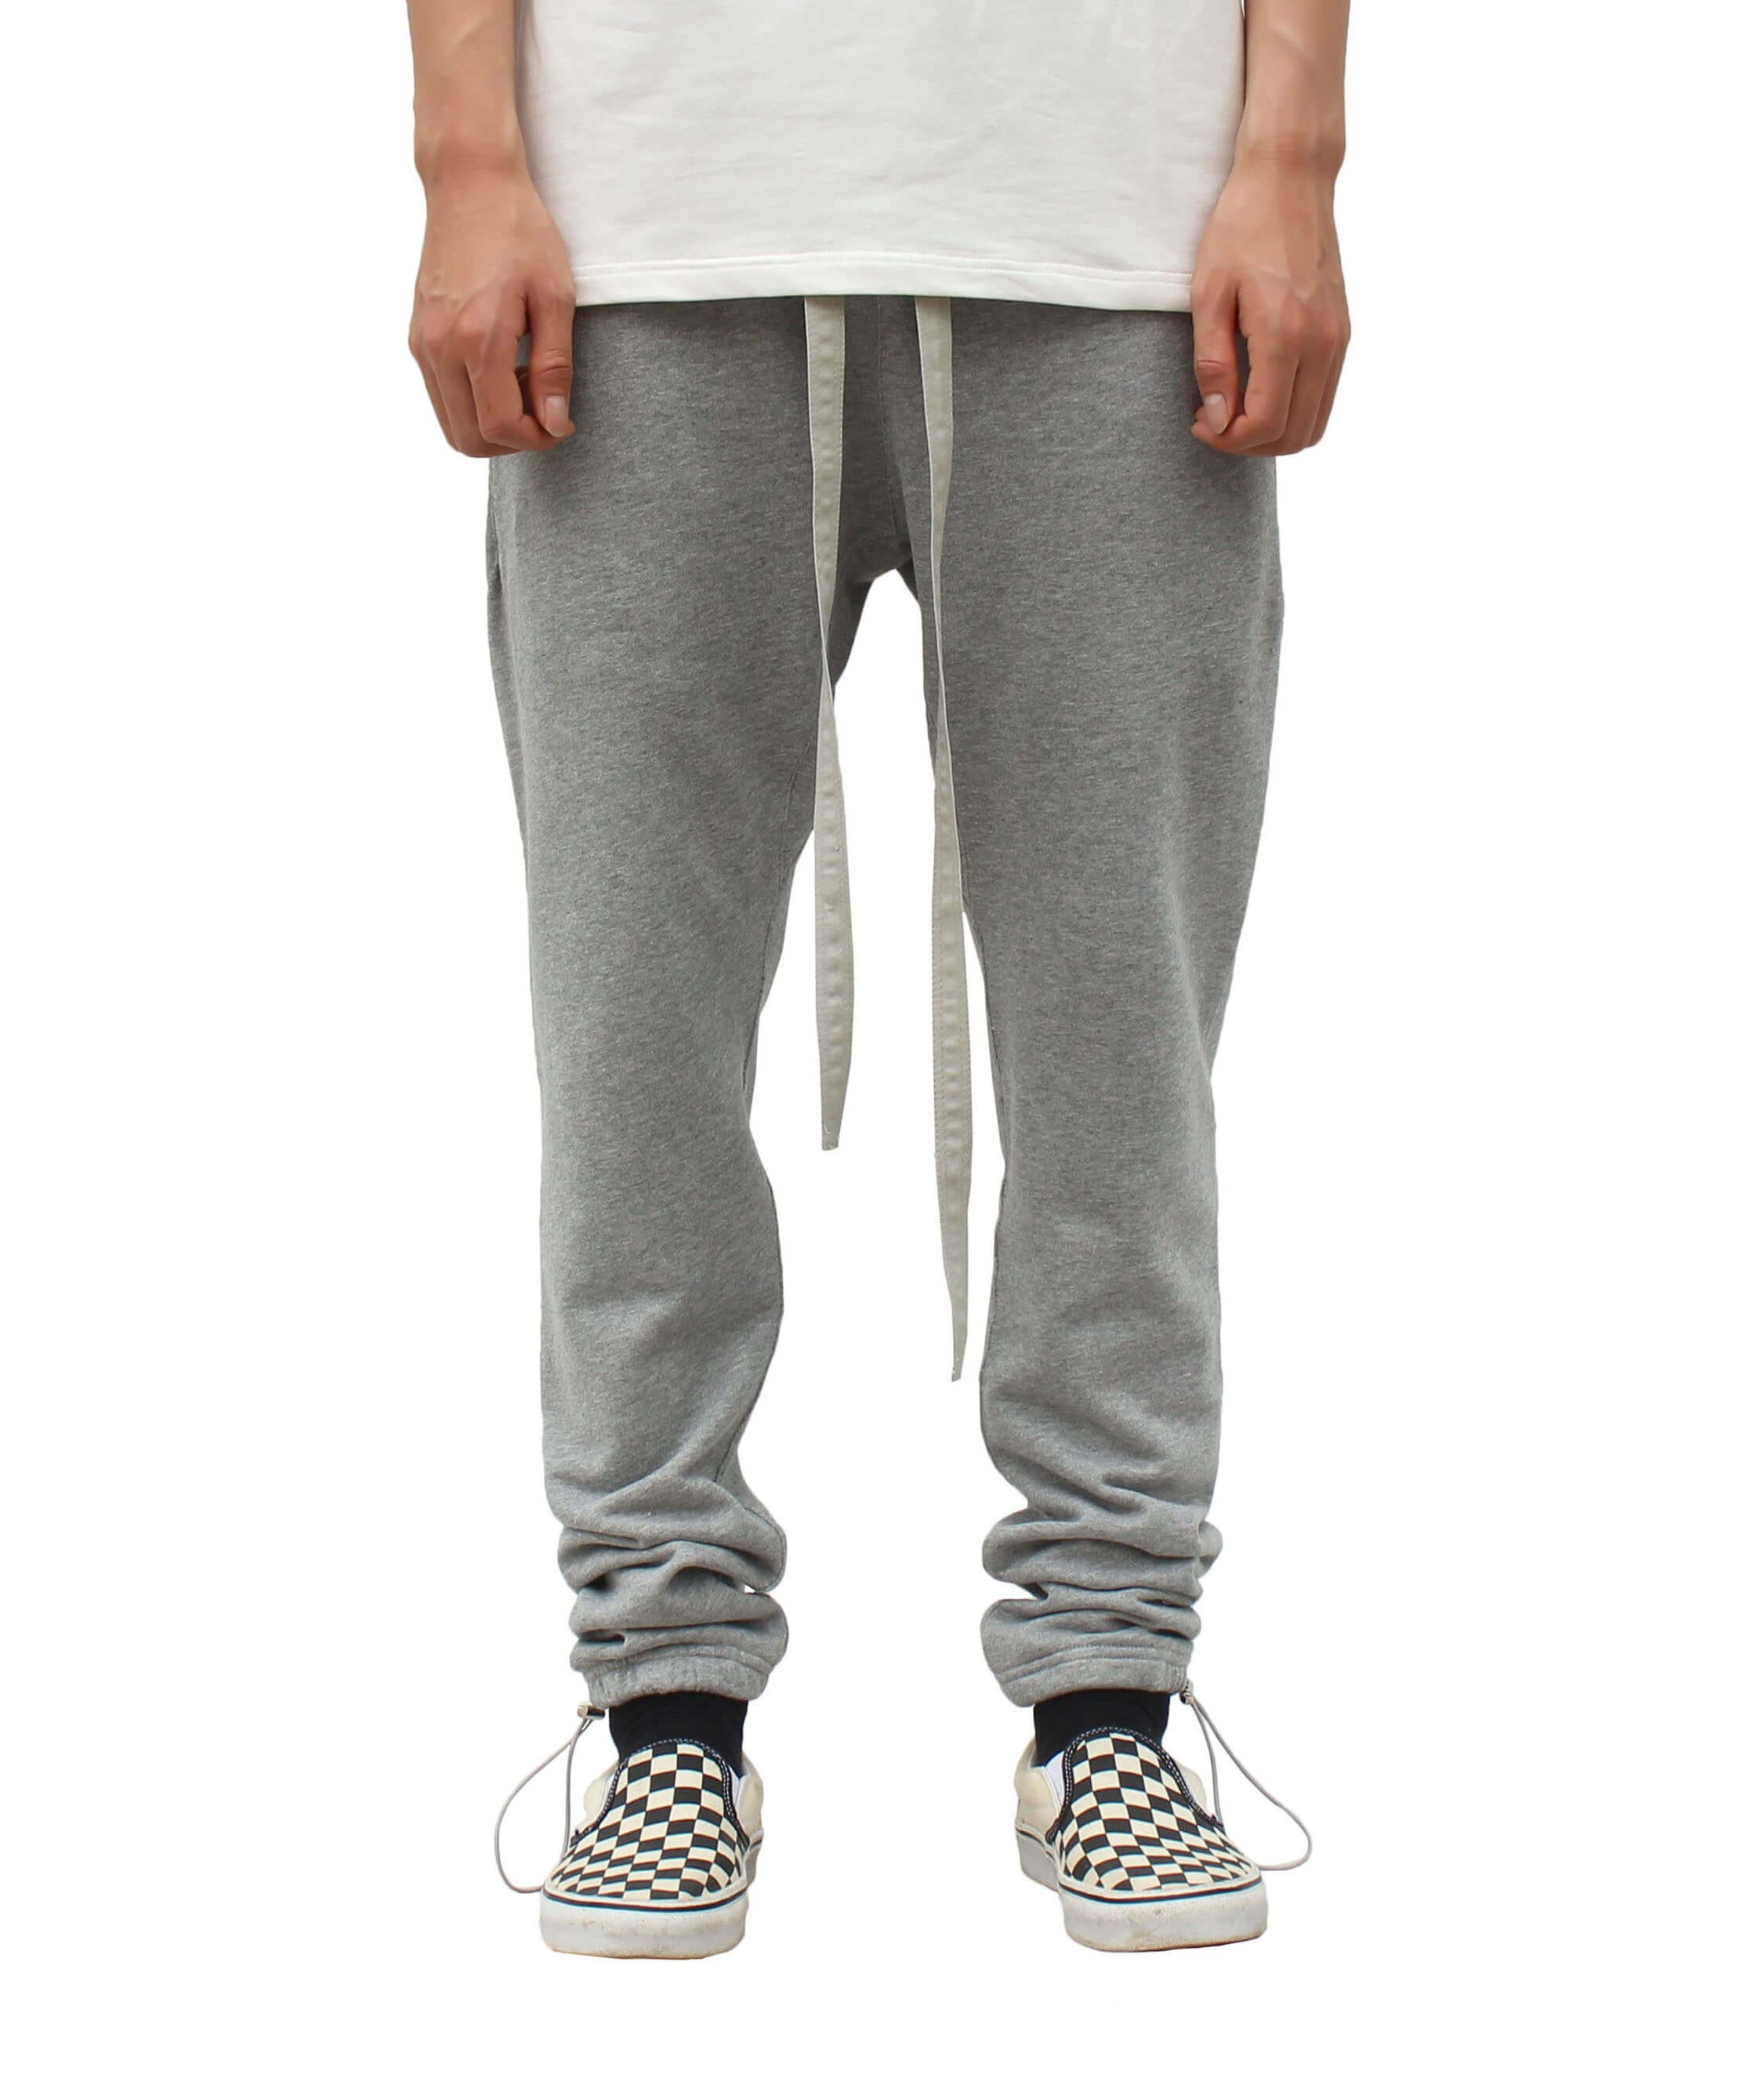 QoolXCWear 19SS Latest High Street Hip-hop Fog Style Season 6 Jerry Sweatpants Slim Fit Cotton Leisure Trousers Streetwear Pants